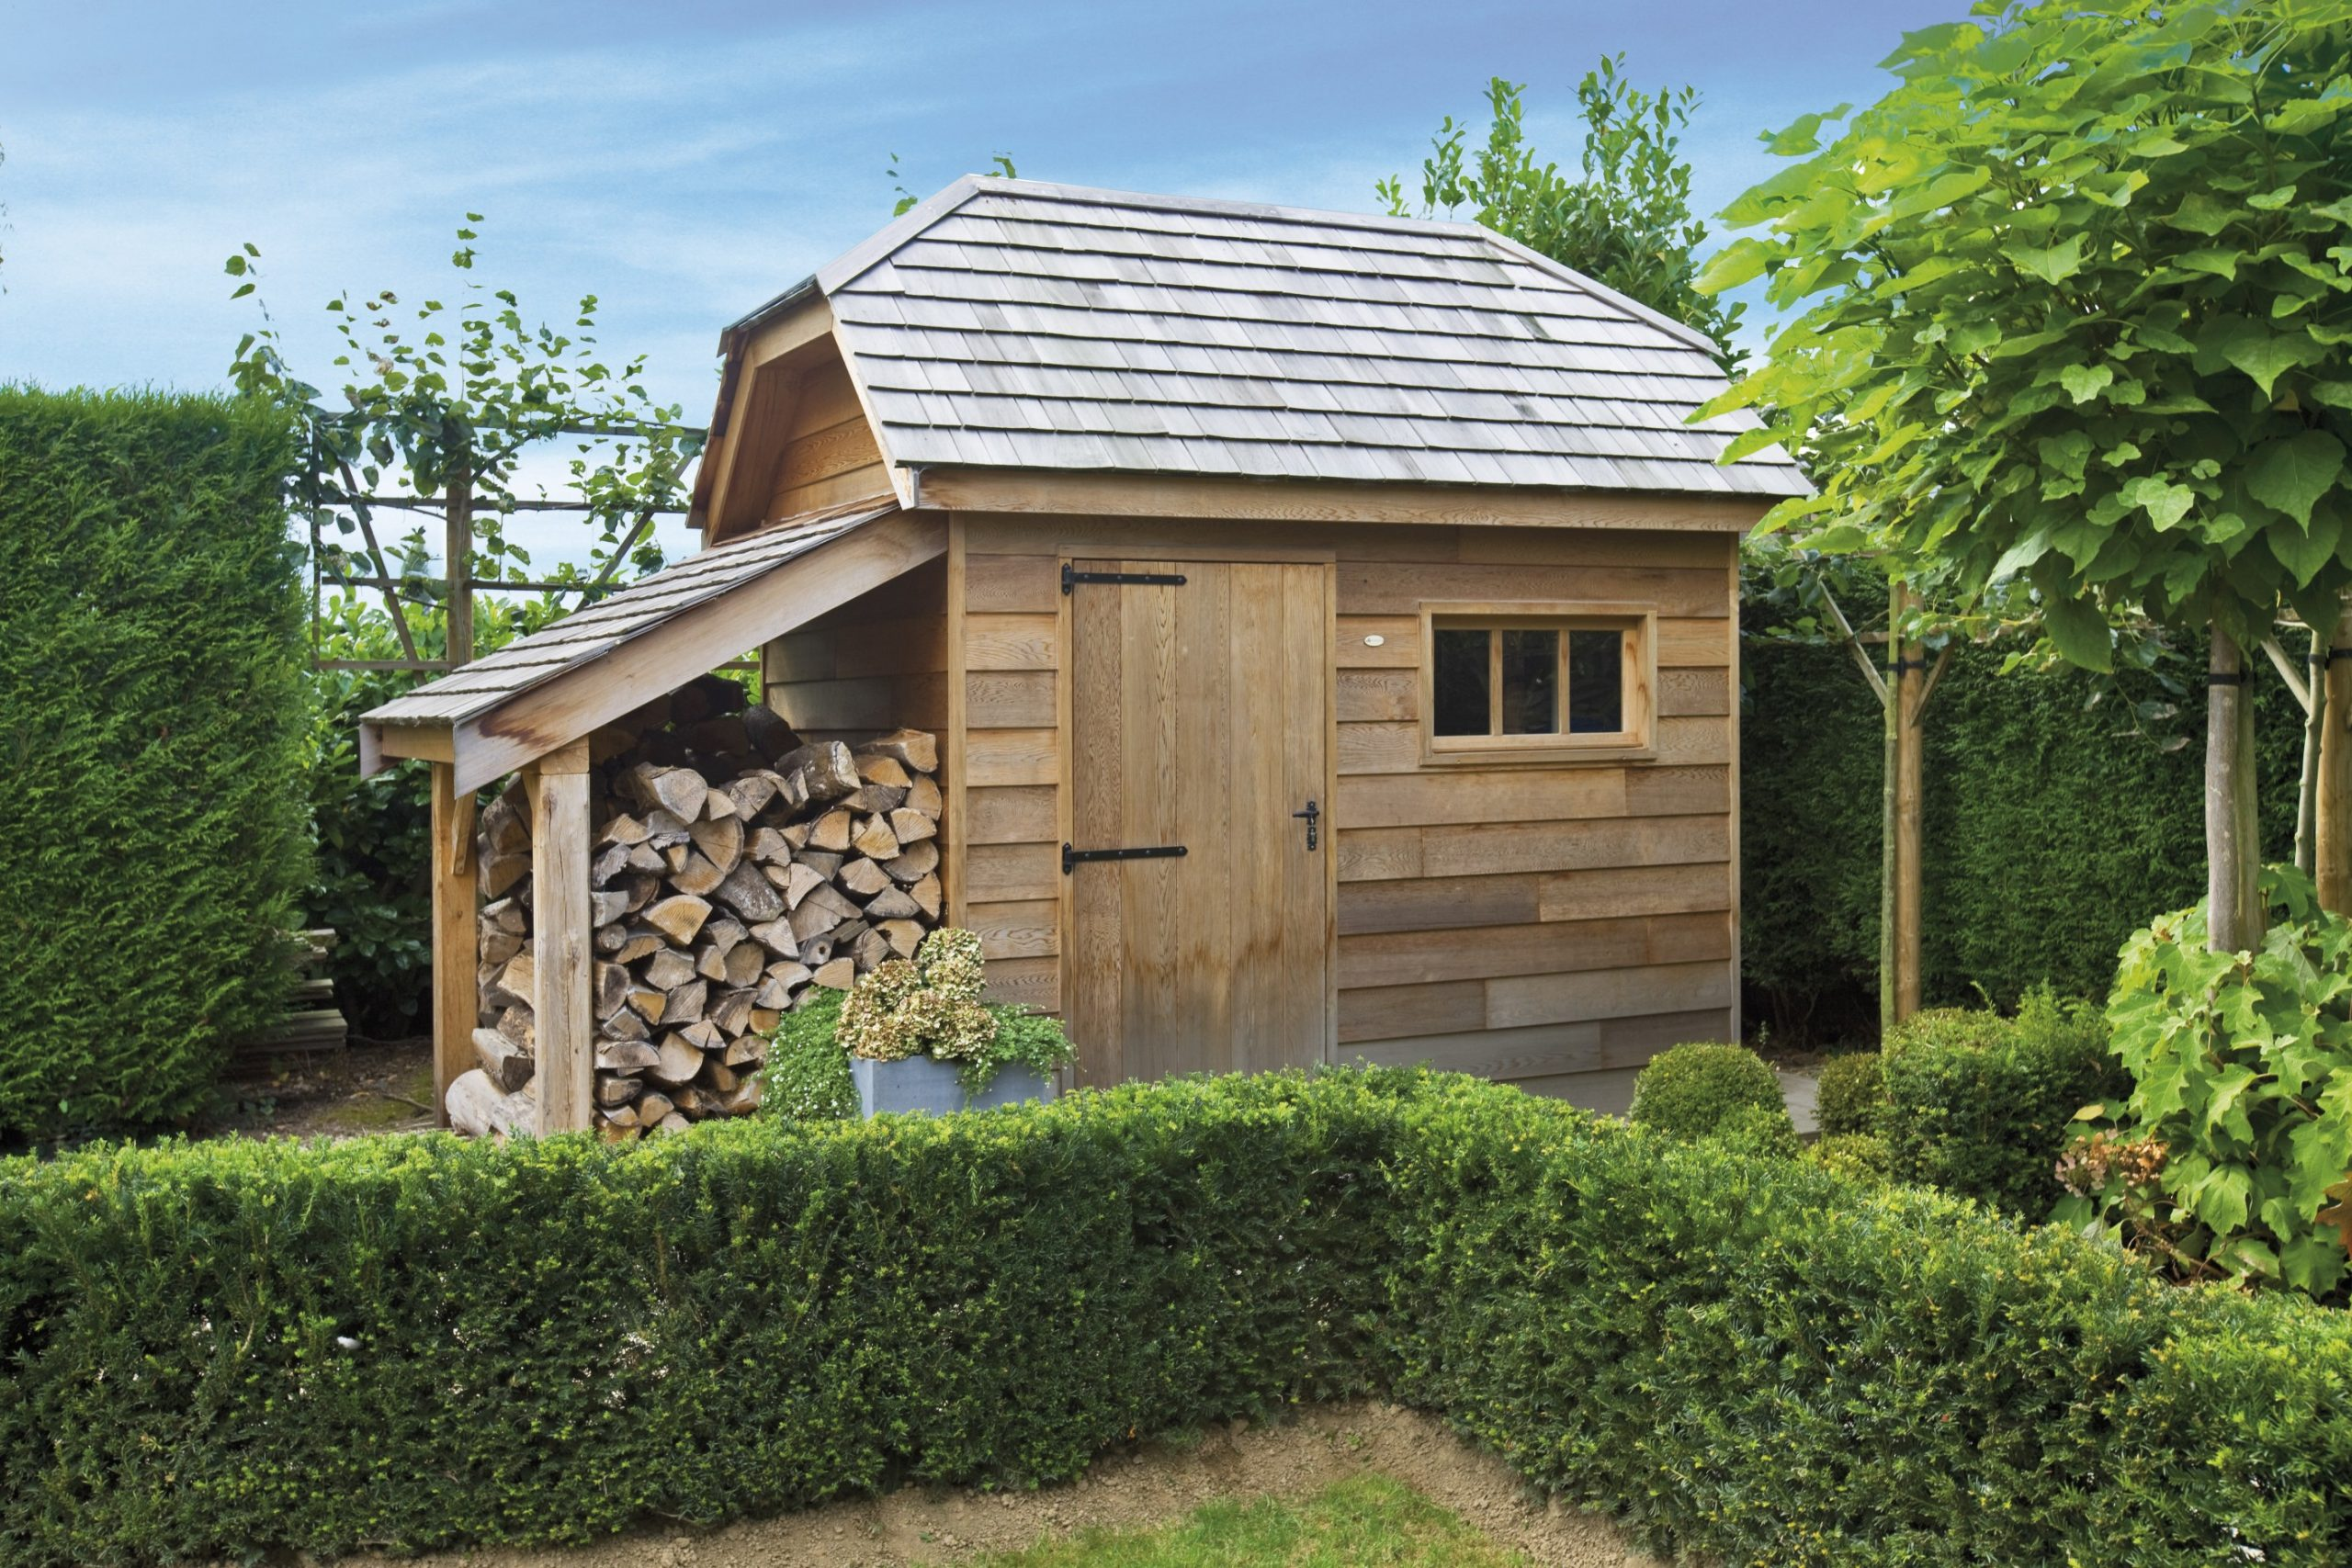 Cottage - Briers Outdoor Life pour Abri De Jardin Cottage